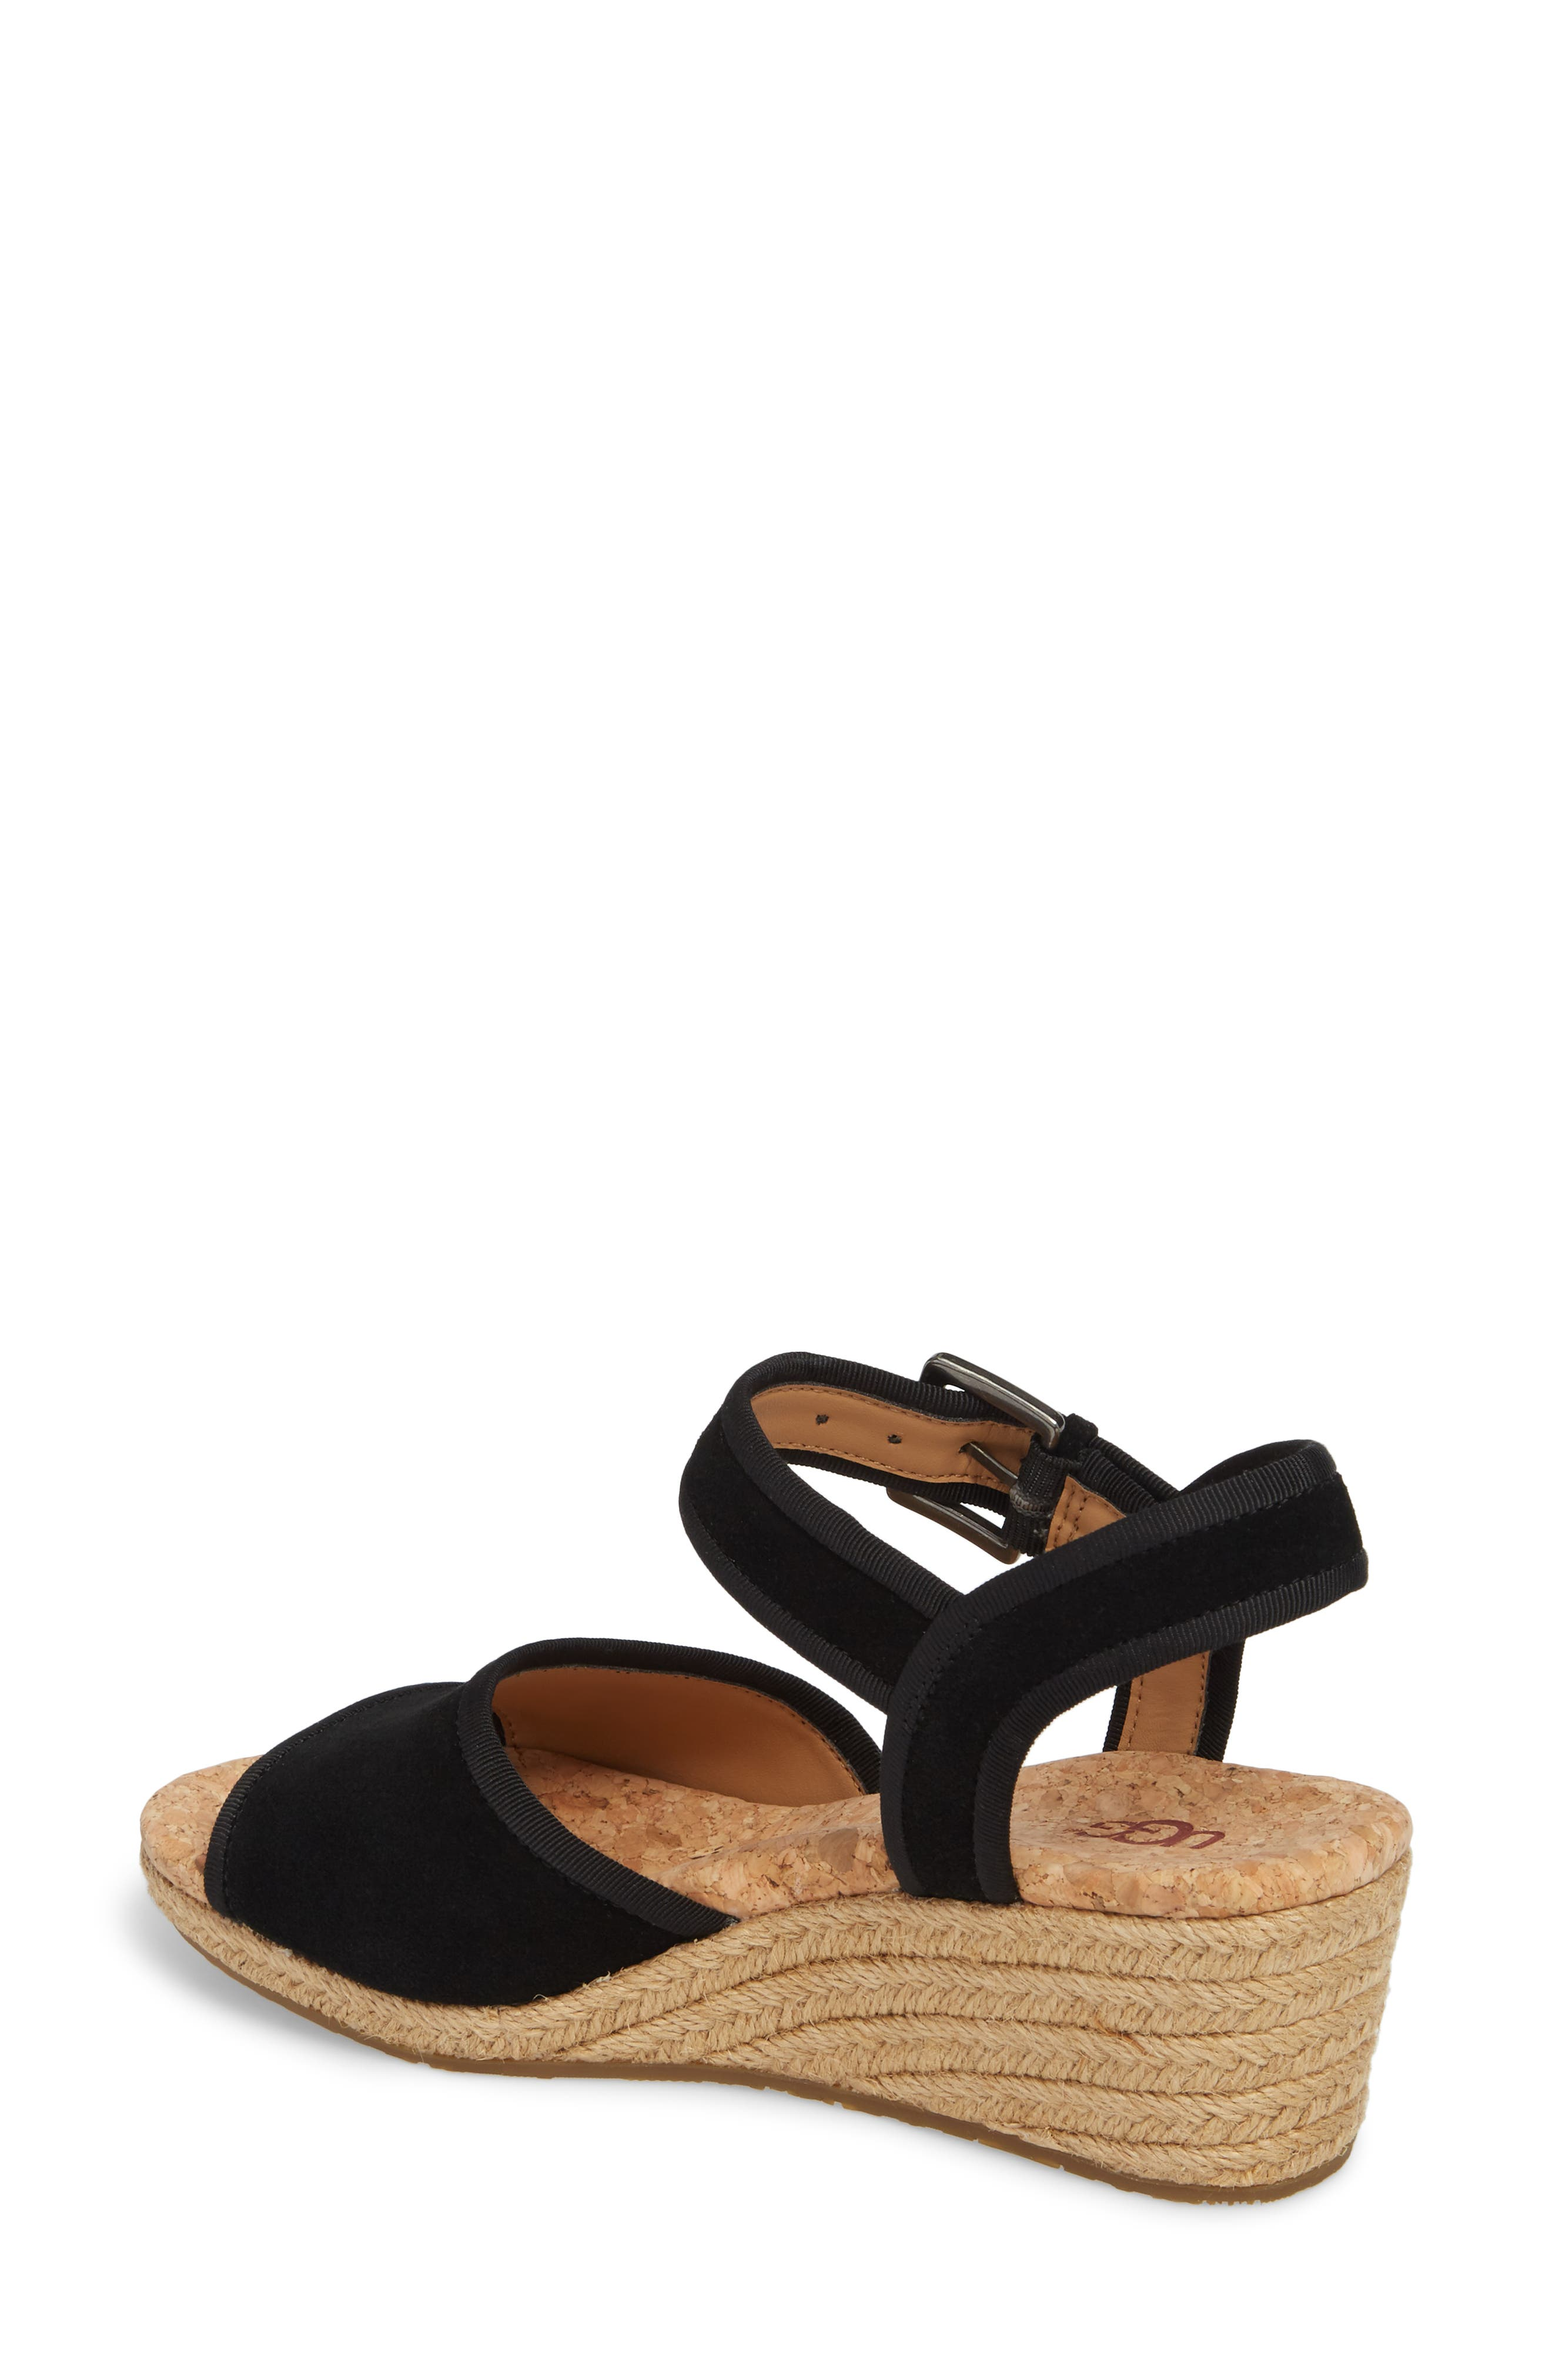 Maybell Wedge Sandal,                             Alternate thumbnail 2, color,                             Black Suede